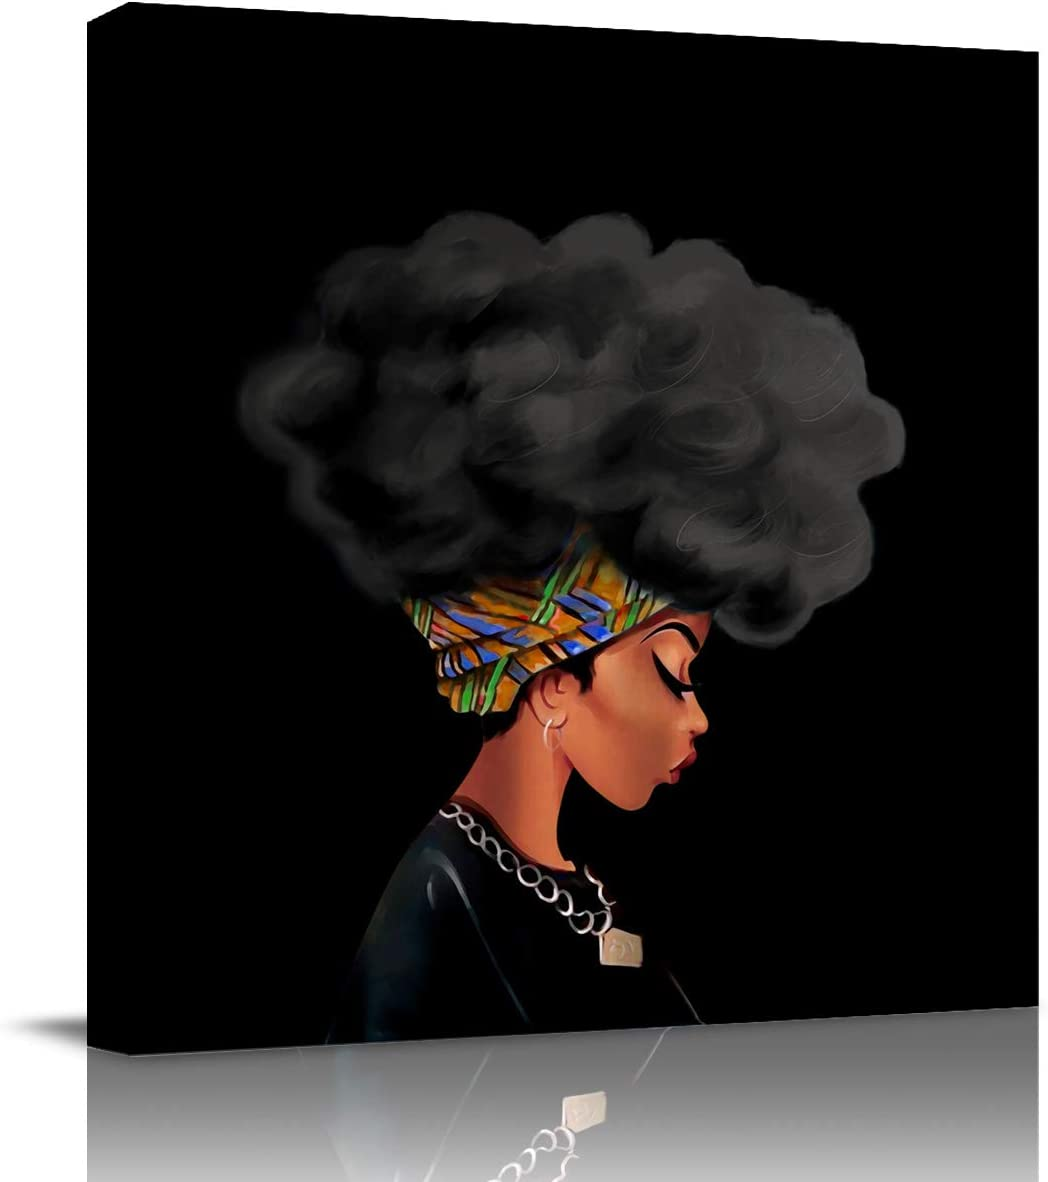 Square Canvas Wall Prints Art for Living Room Bedroom 12x12 inch - African American Pretty Girl Afro Woman with Black Hair Poster Artwork Picture Painting Ready to Hang for Home Bathroom Office Decor